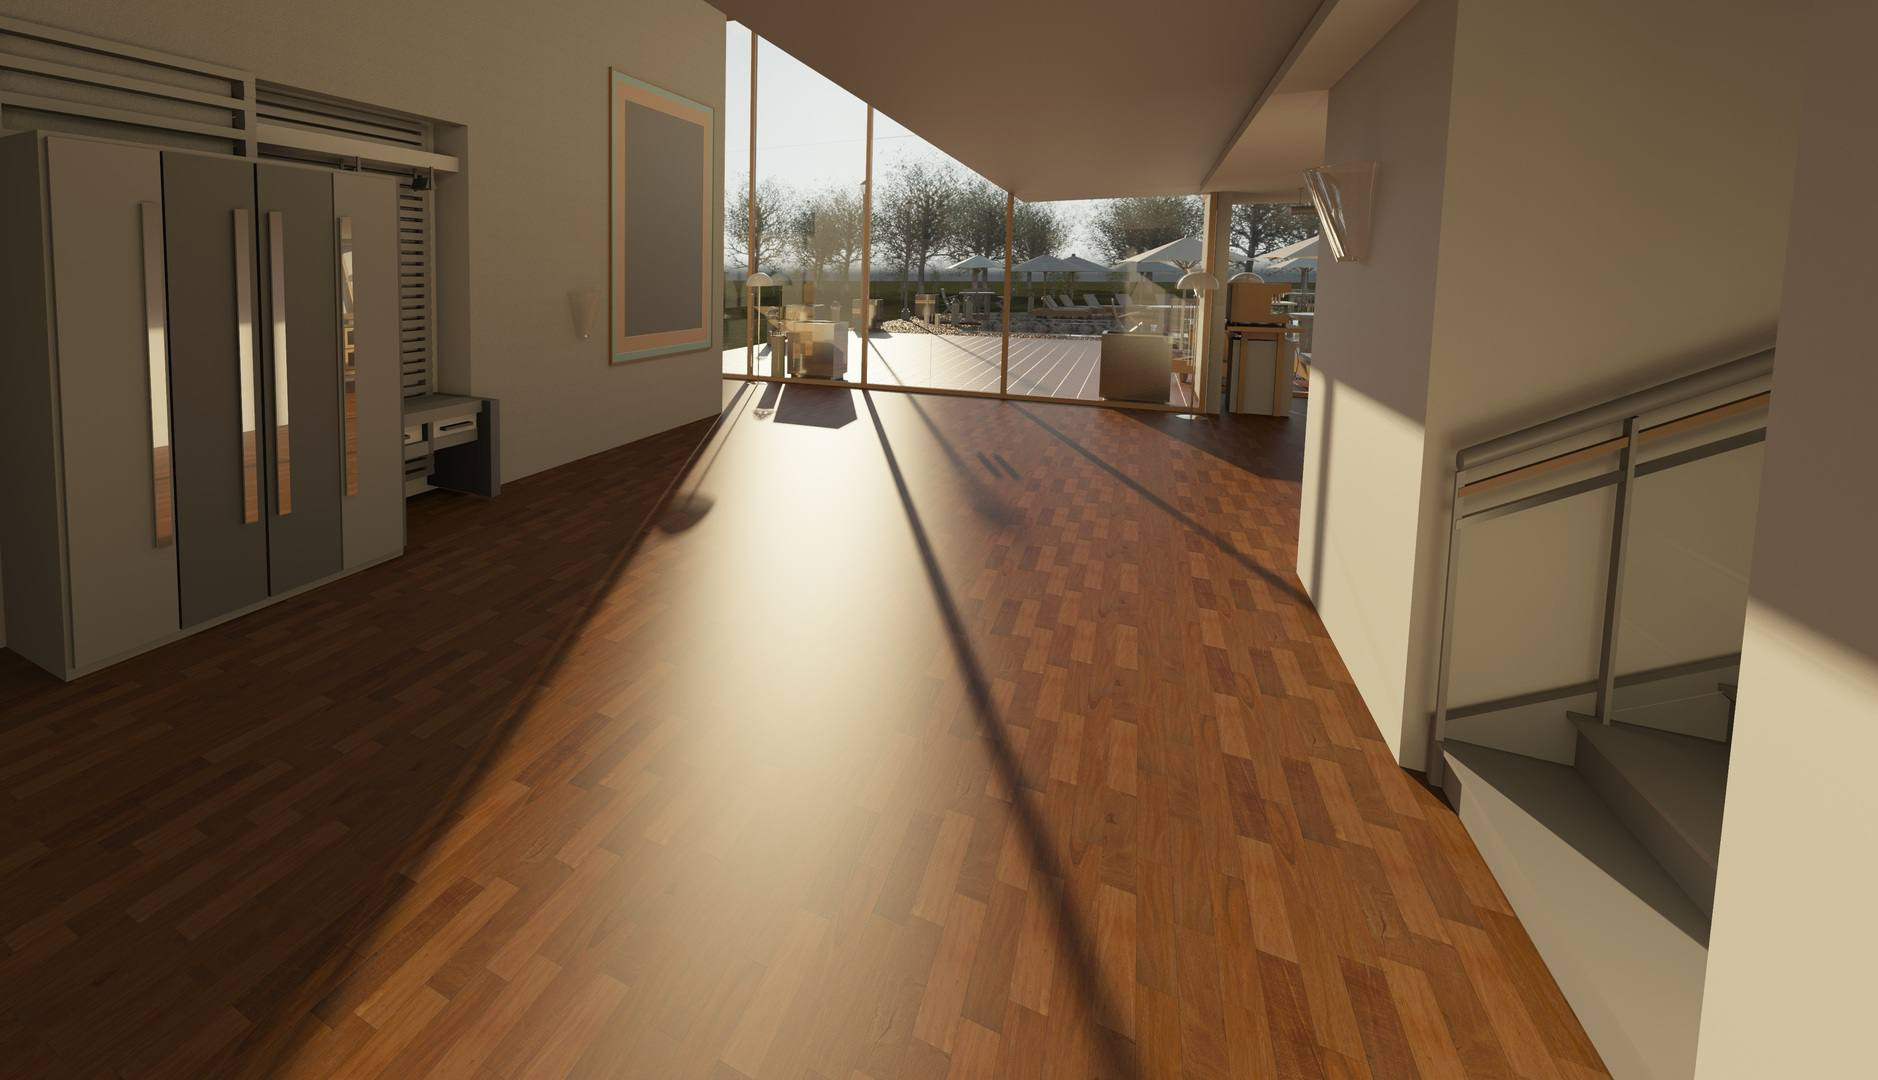 How to Install Floating Hardwood Floors Yourself Of Common Flooring Types Currently Used In Renovation and Building with Architecture Wood House Floor Interior Window 917178 Pxhere Com 5ba27a2cc9e77c00503b27b9